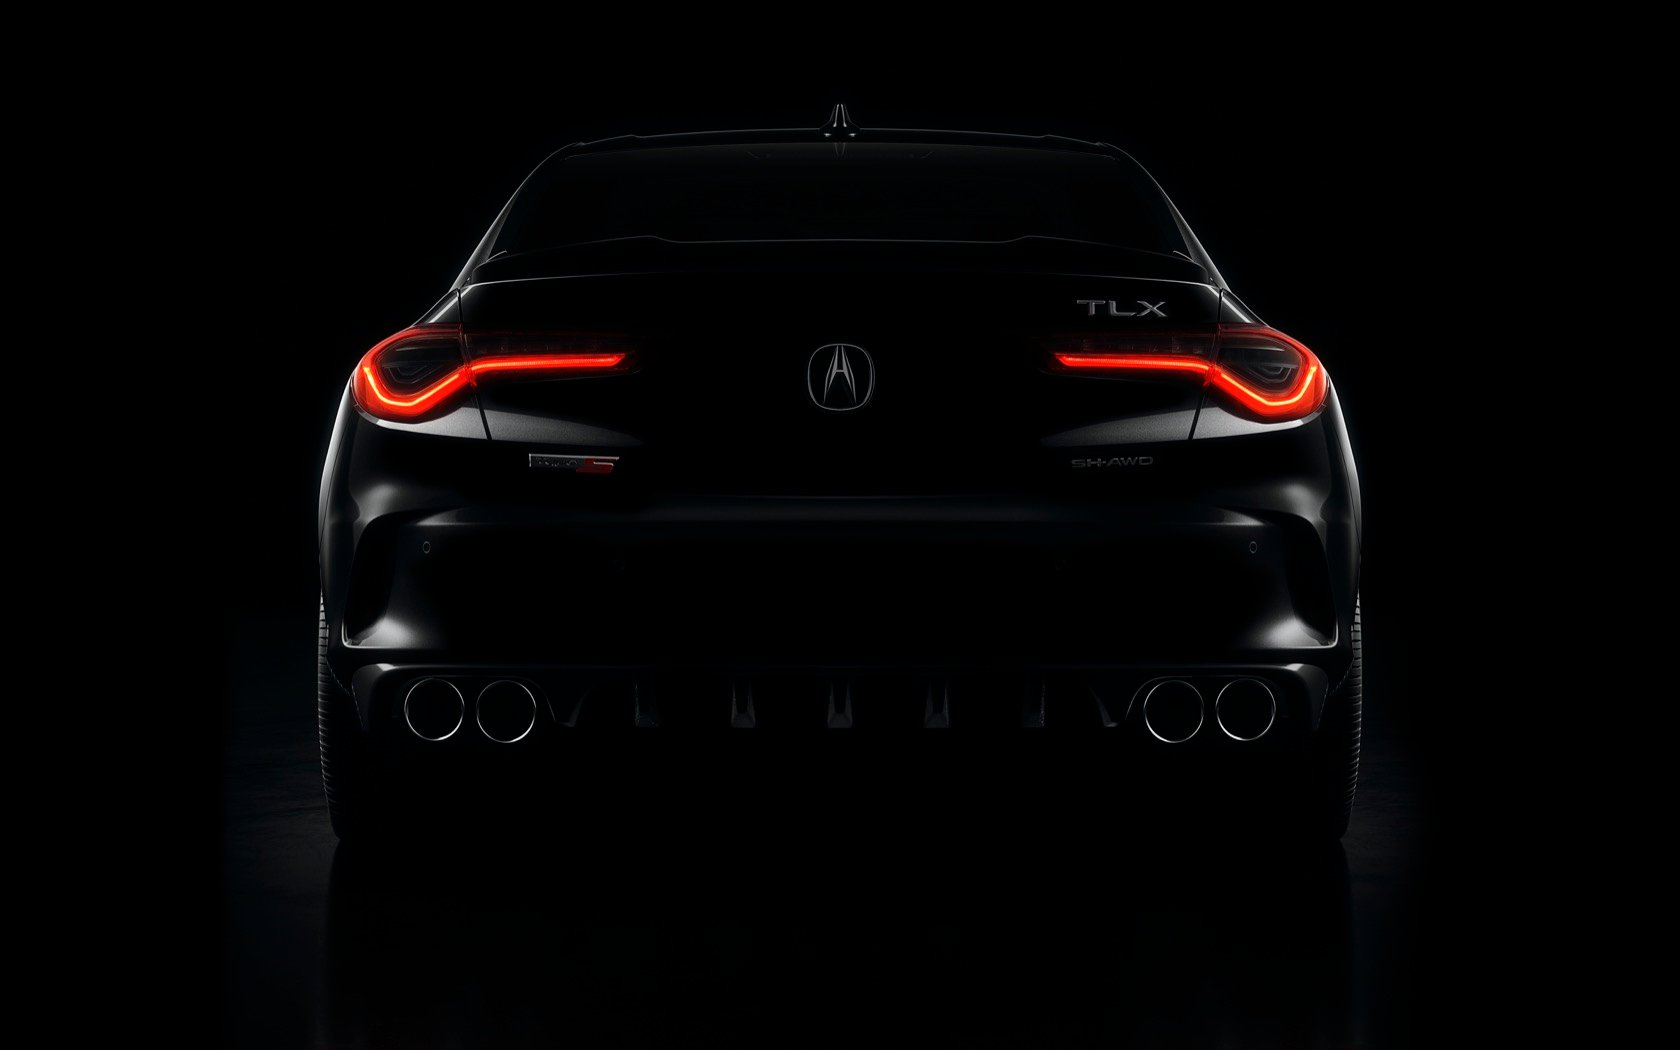 2021 Acura TLX reveal set New TLX Type S with turbo V6 confirmed 1680x1050